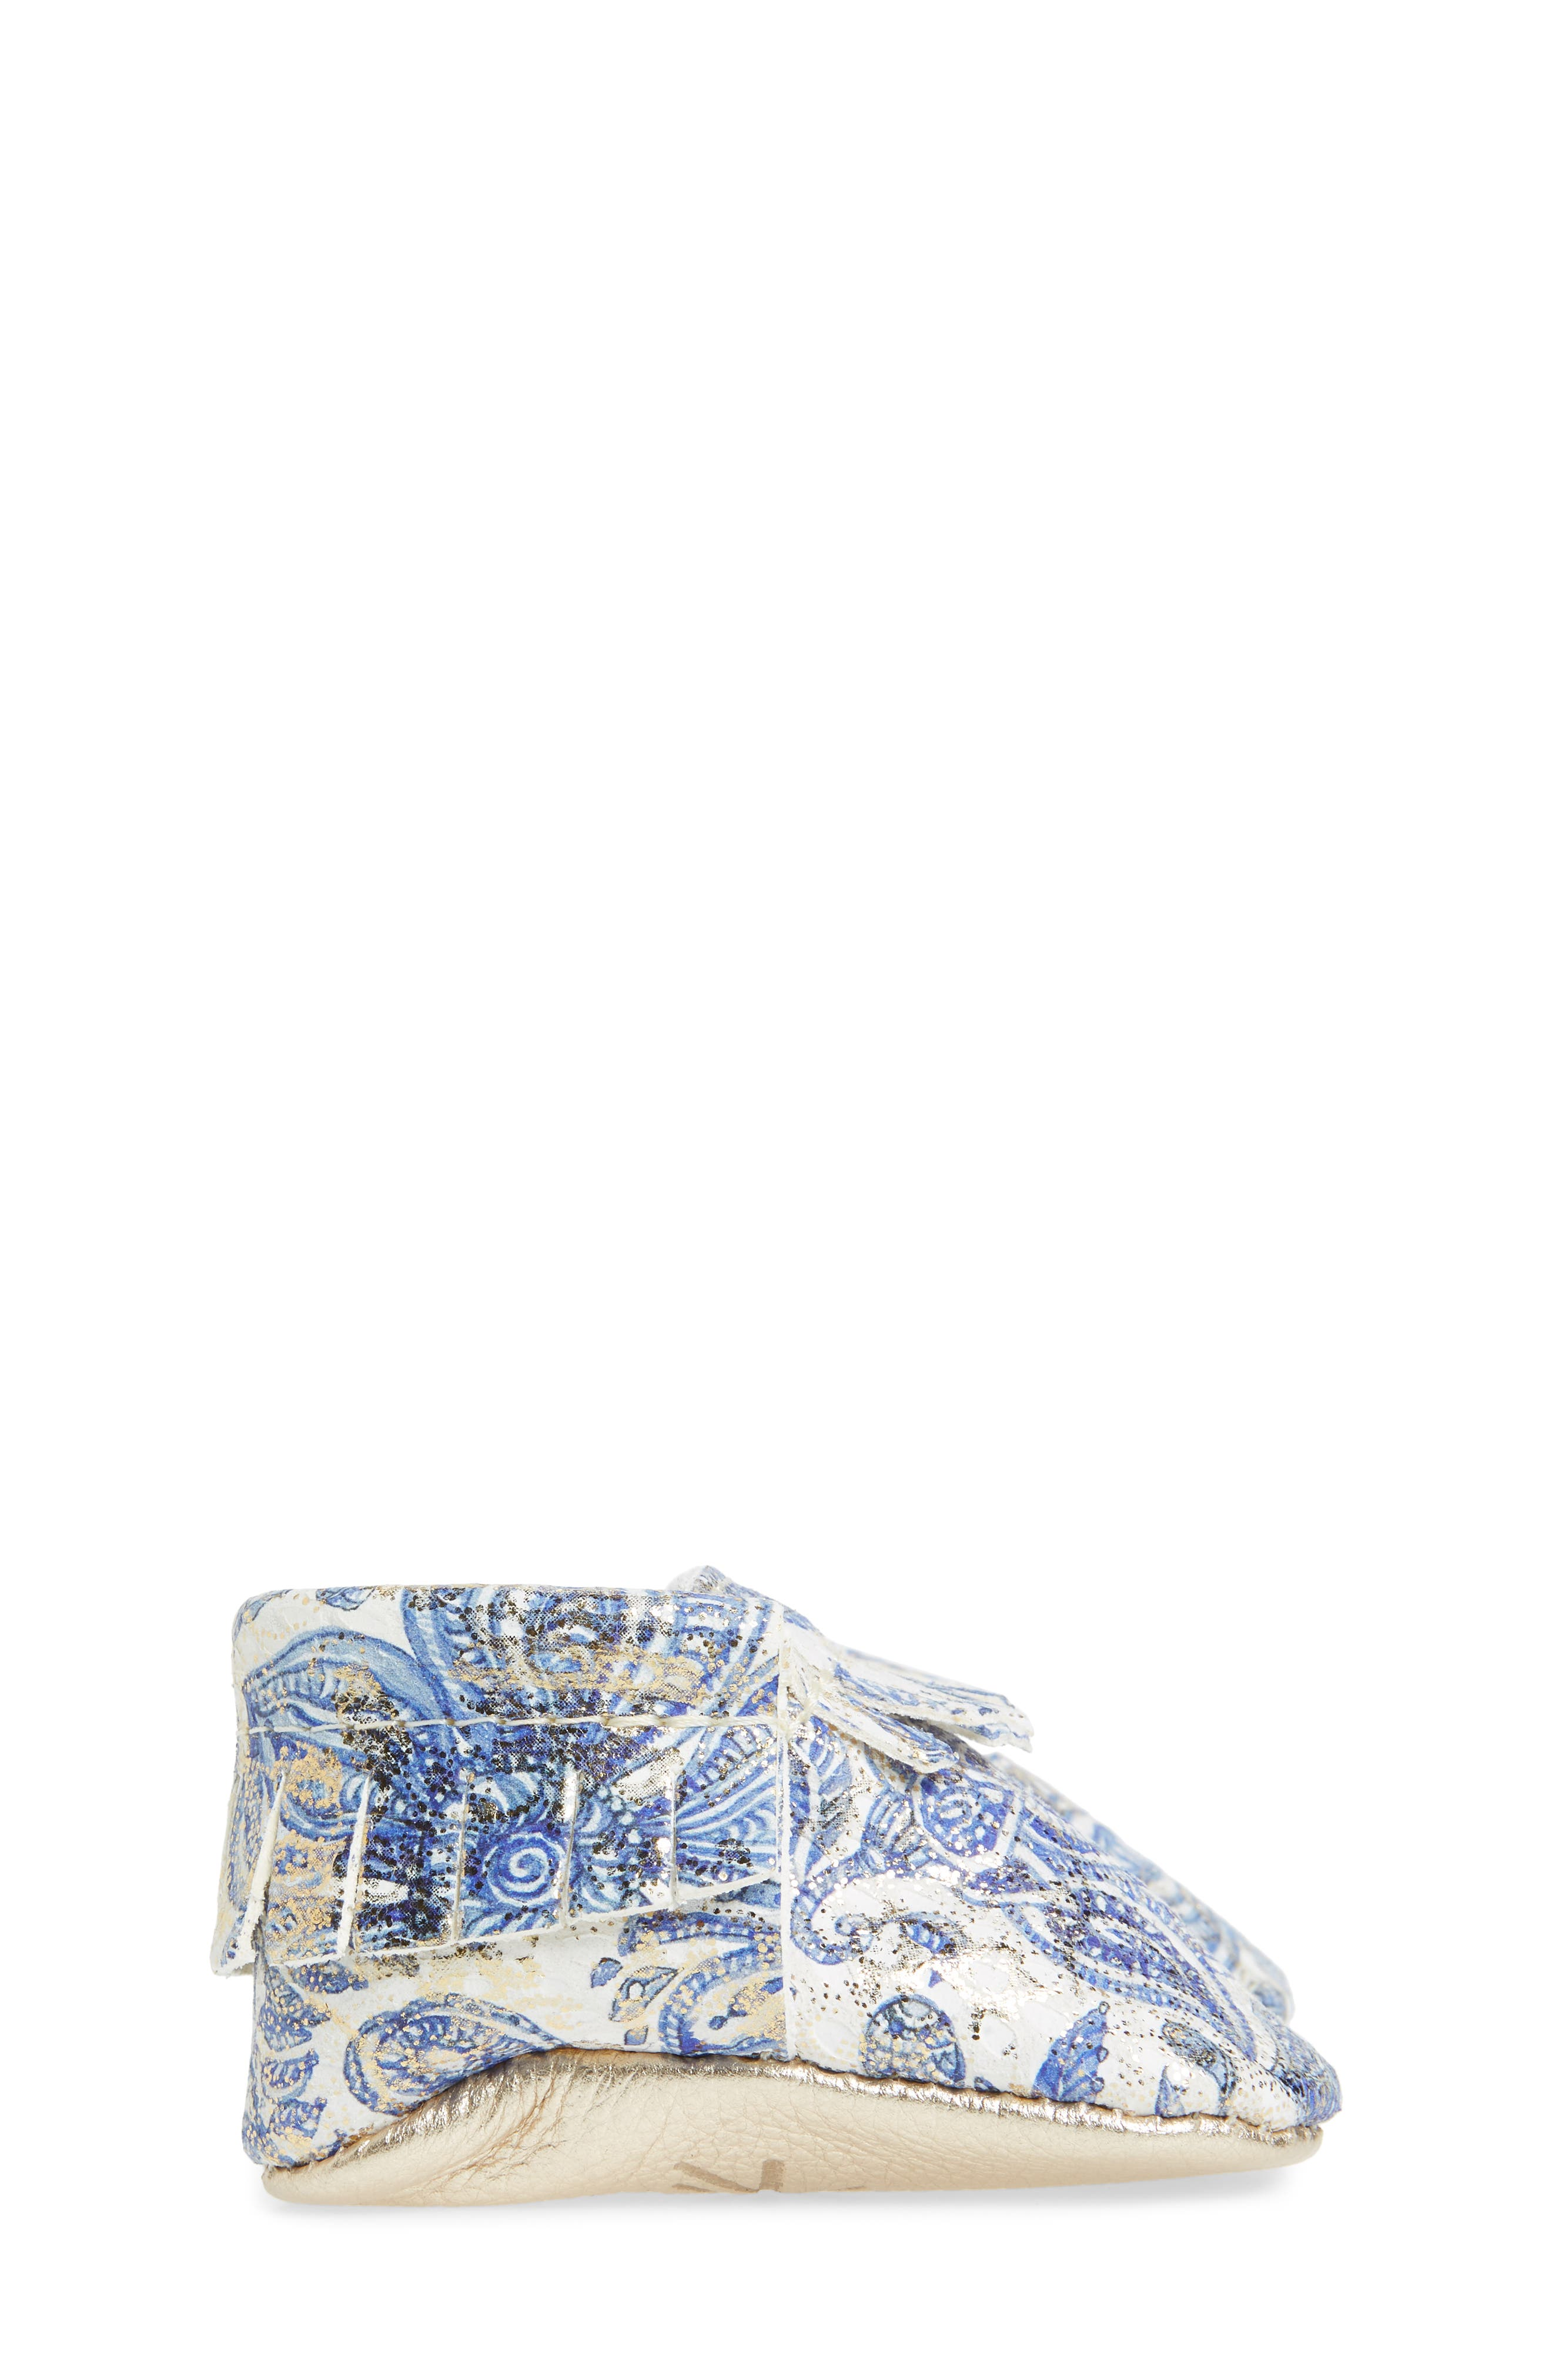 Paisley Glitter Moccasin,                             Alternate thumbnail 4, color,                             408